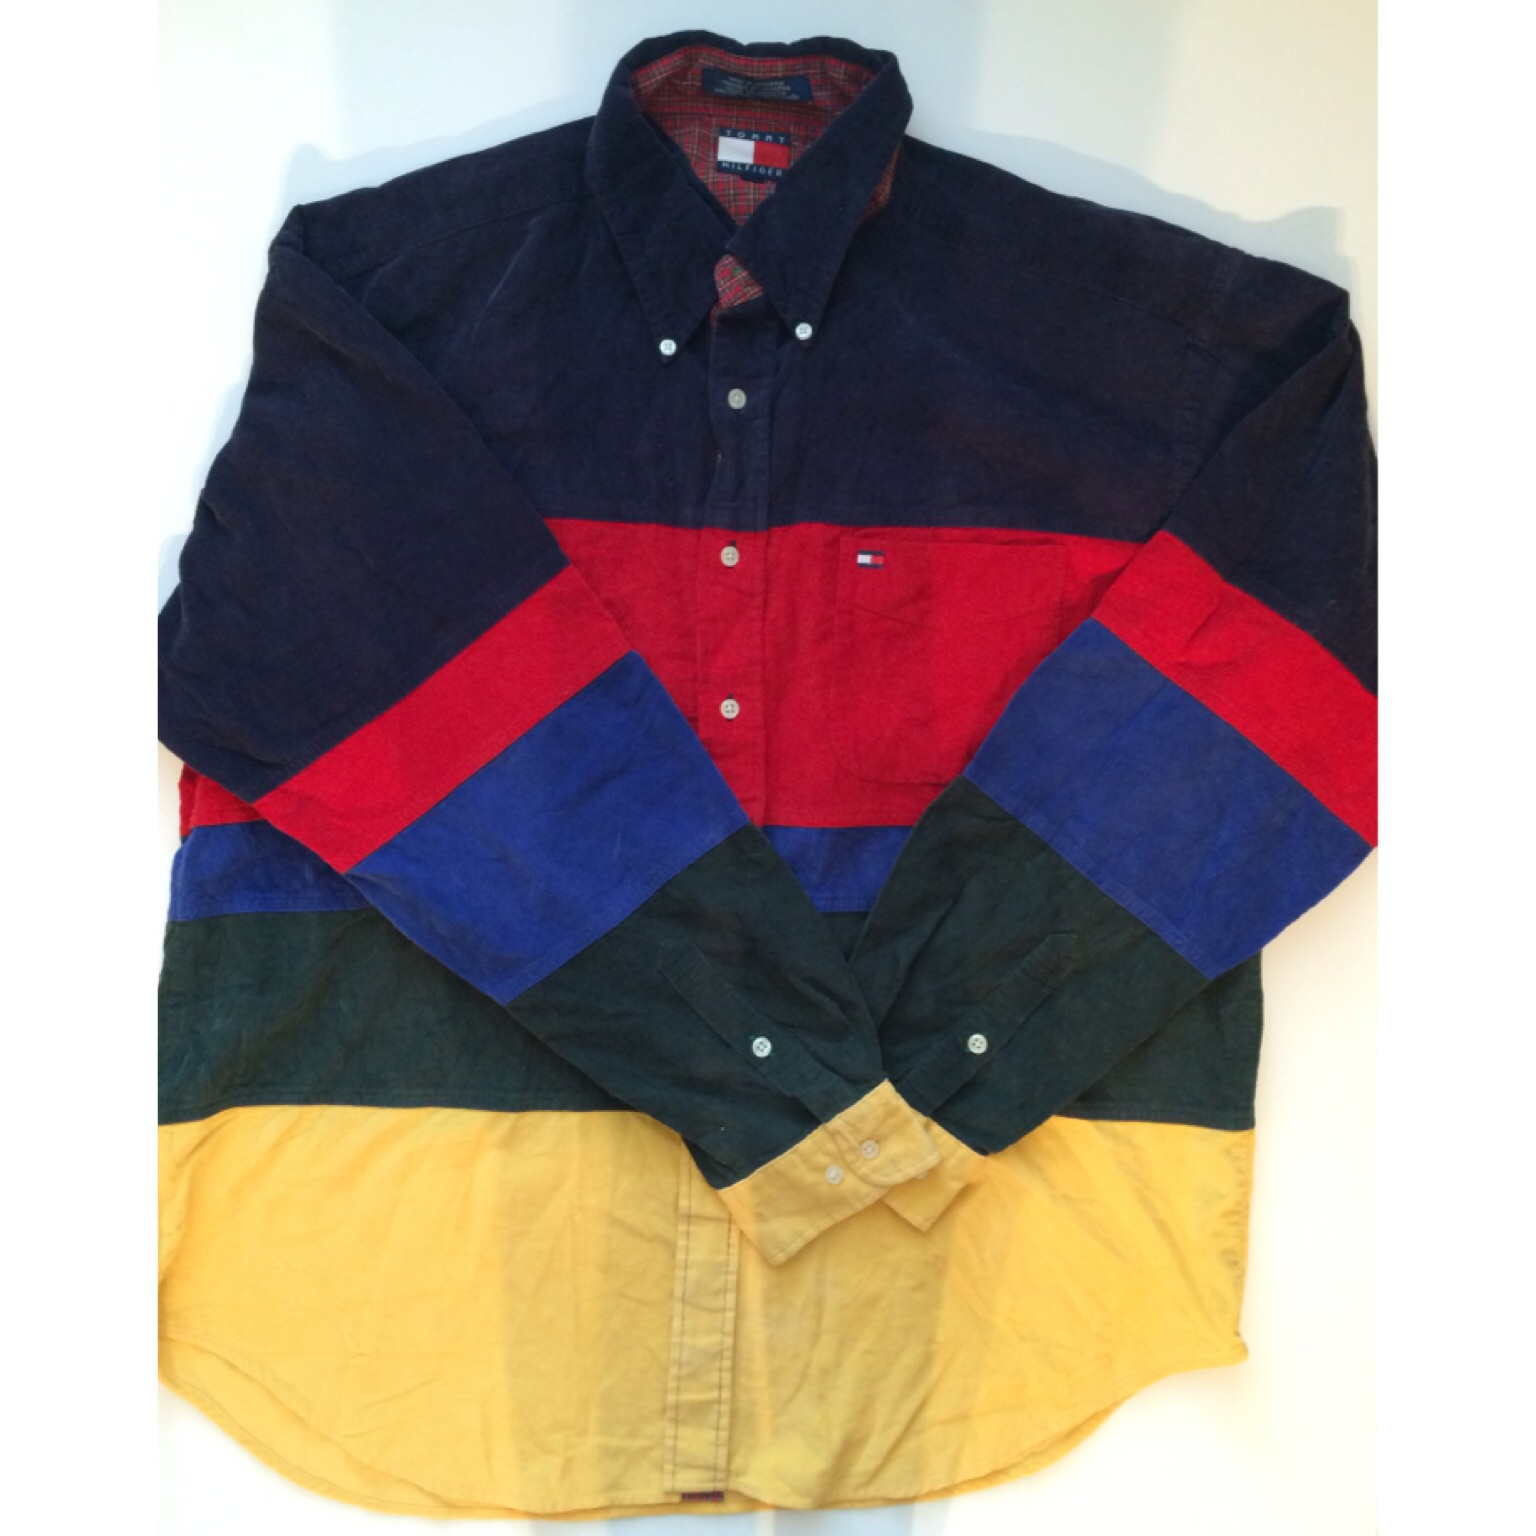 45611dfc6 SOLD OUT* Vintage Tommy Hilfiger Striped Corduroy Shirt on Storenvy